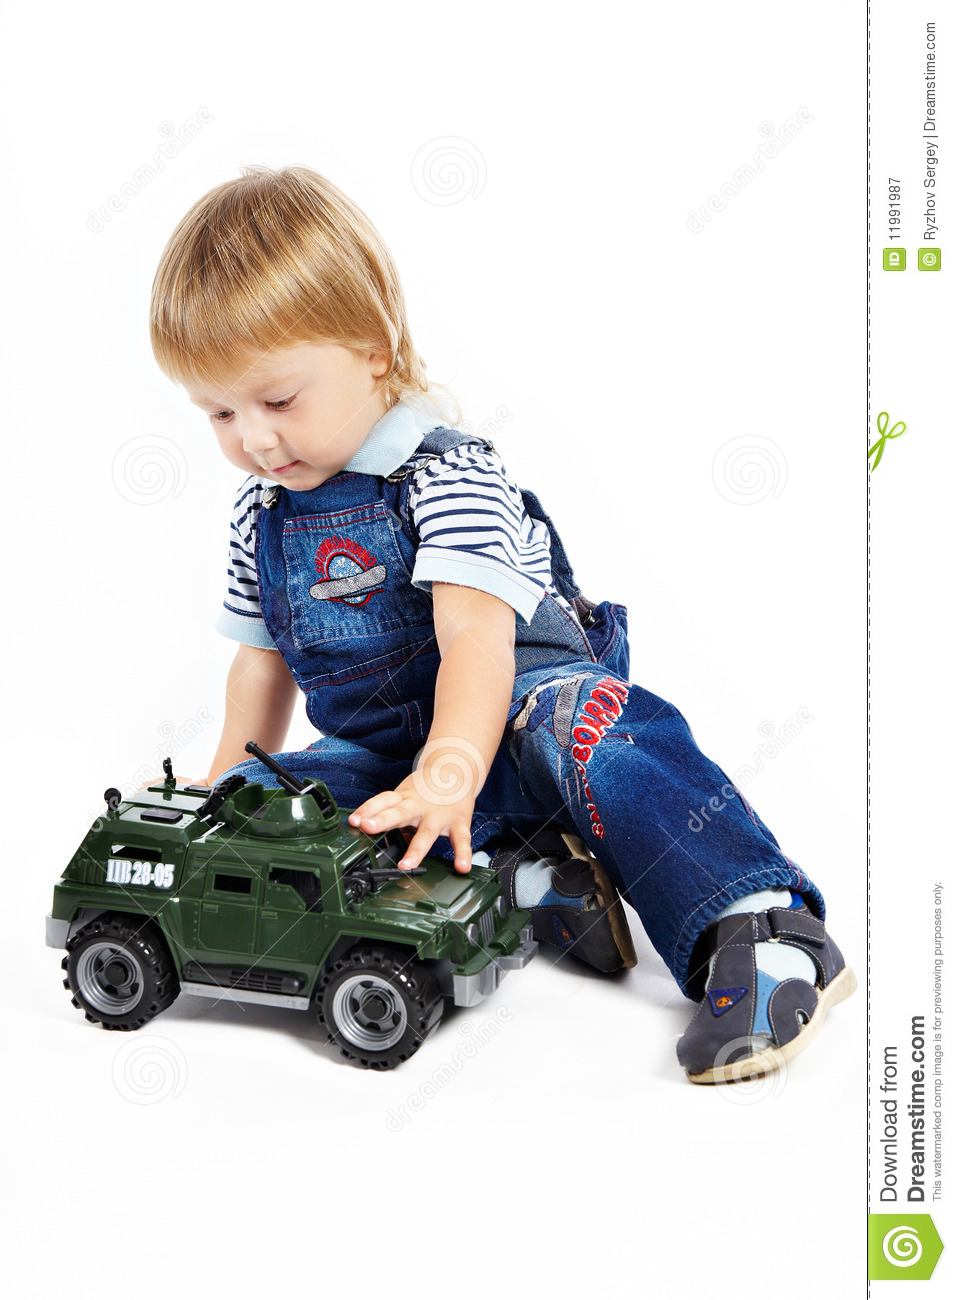 Little Boys Toys Border : The little boy with a toy military vehicle stock image